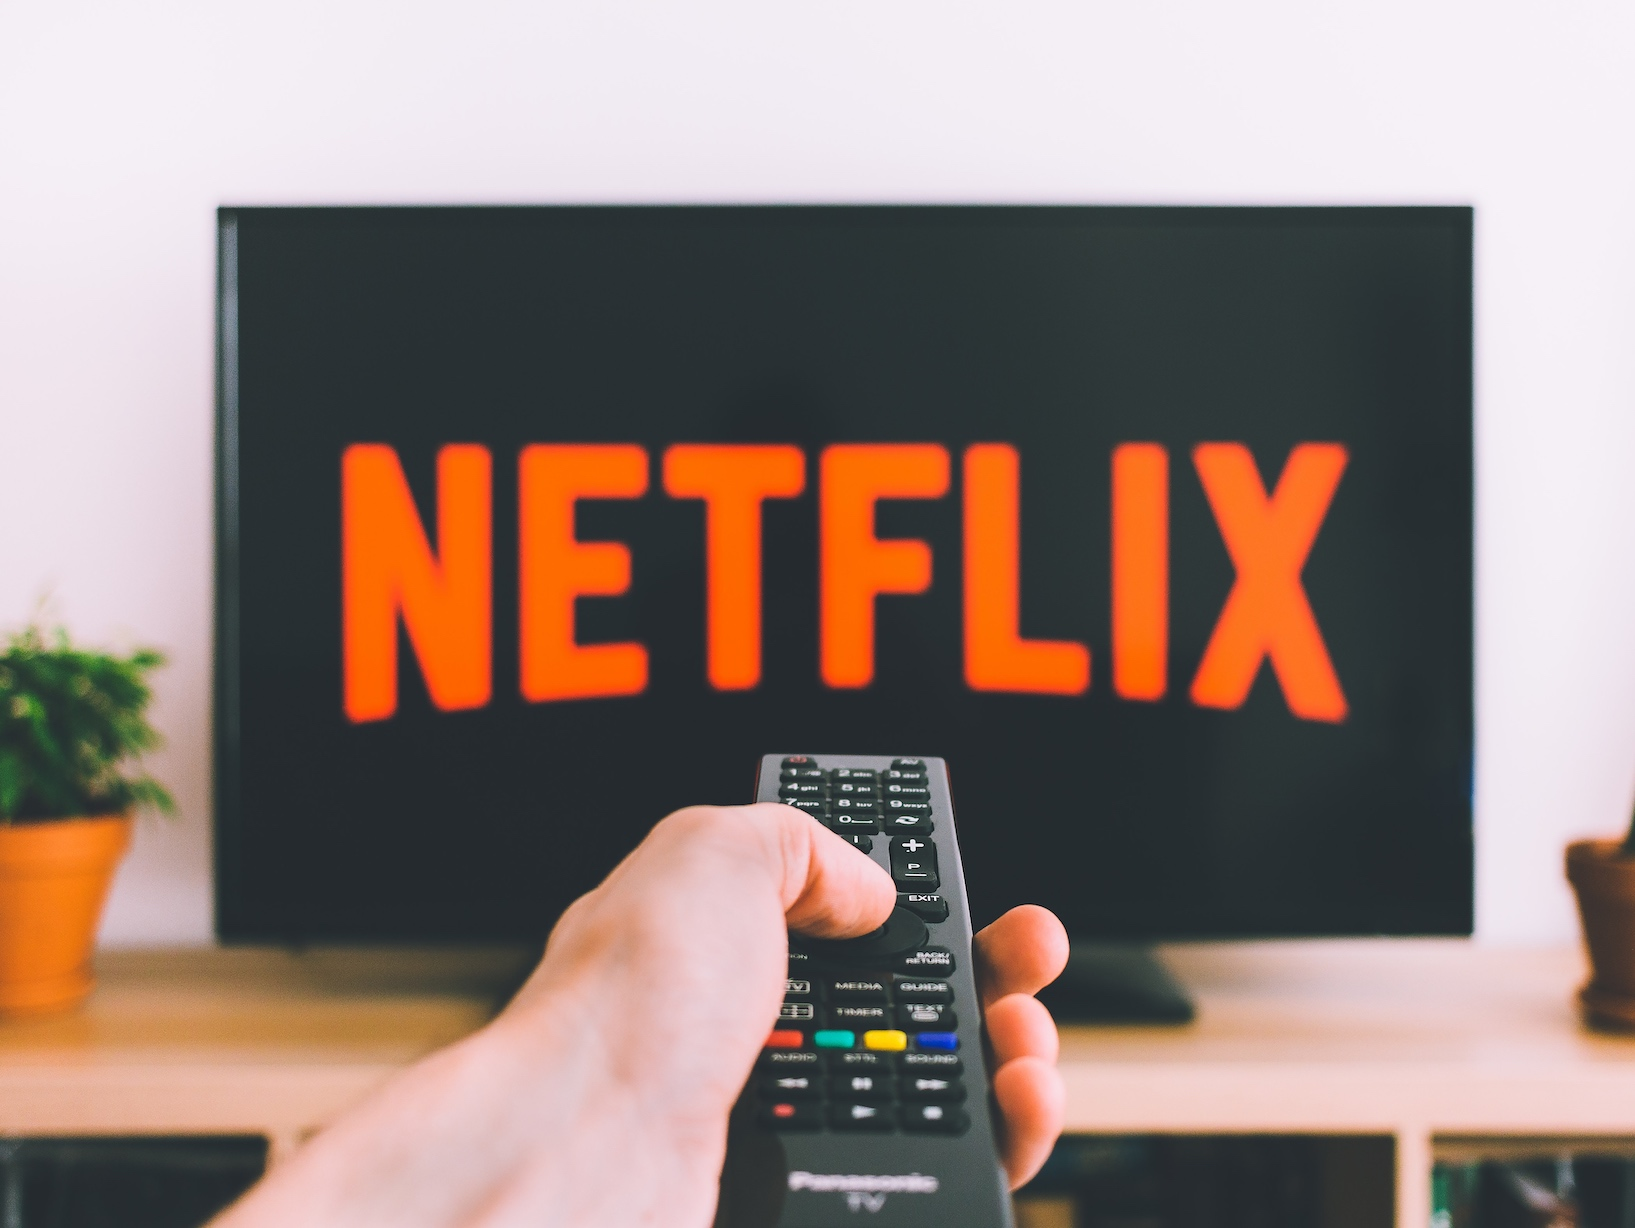 Netflix logo on a TV with a hand and a remote in the foreground